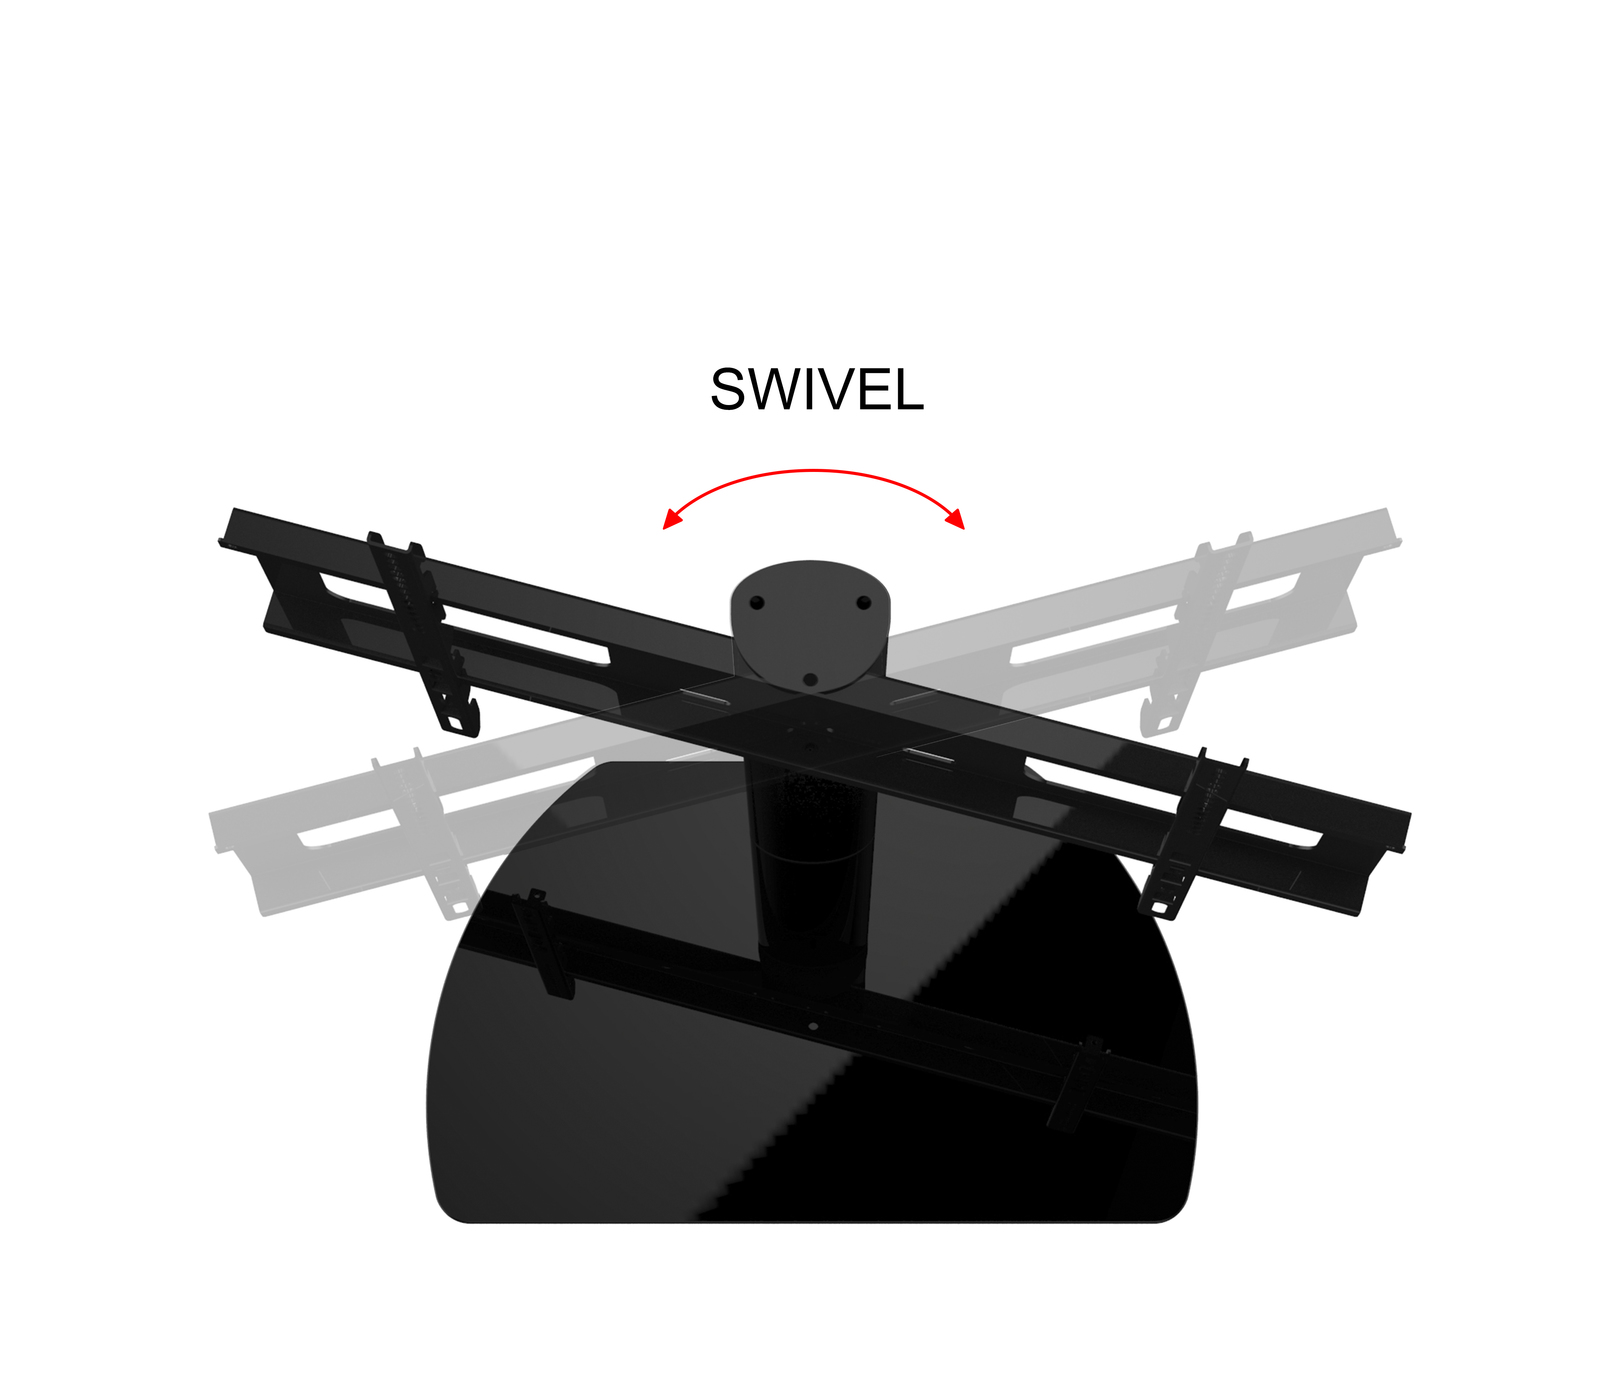 New Universal Replacement Swivel TV Stand/Base for LG 55LA6200